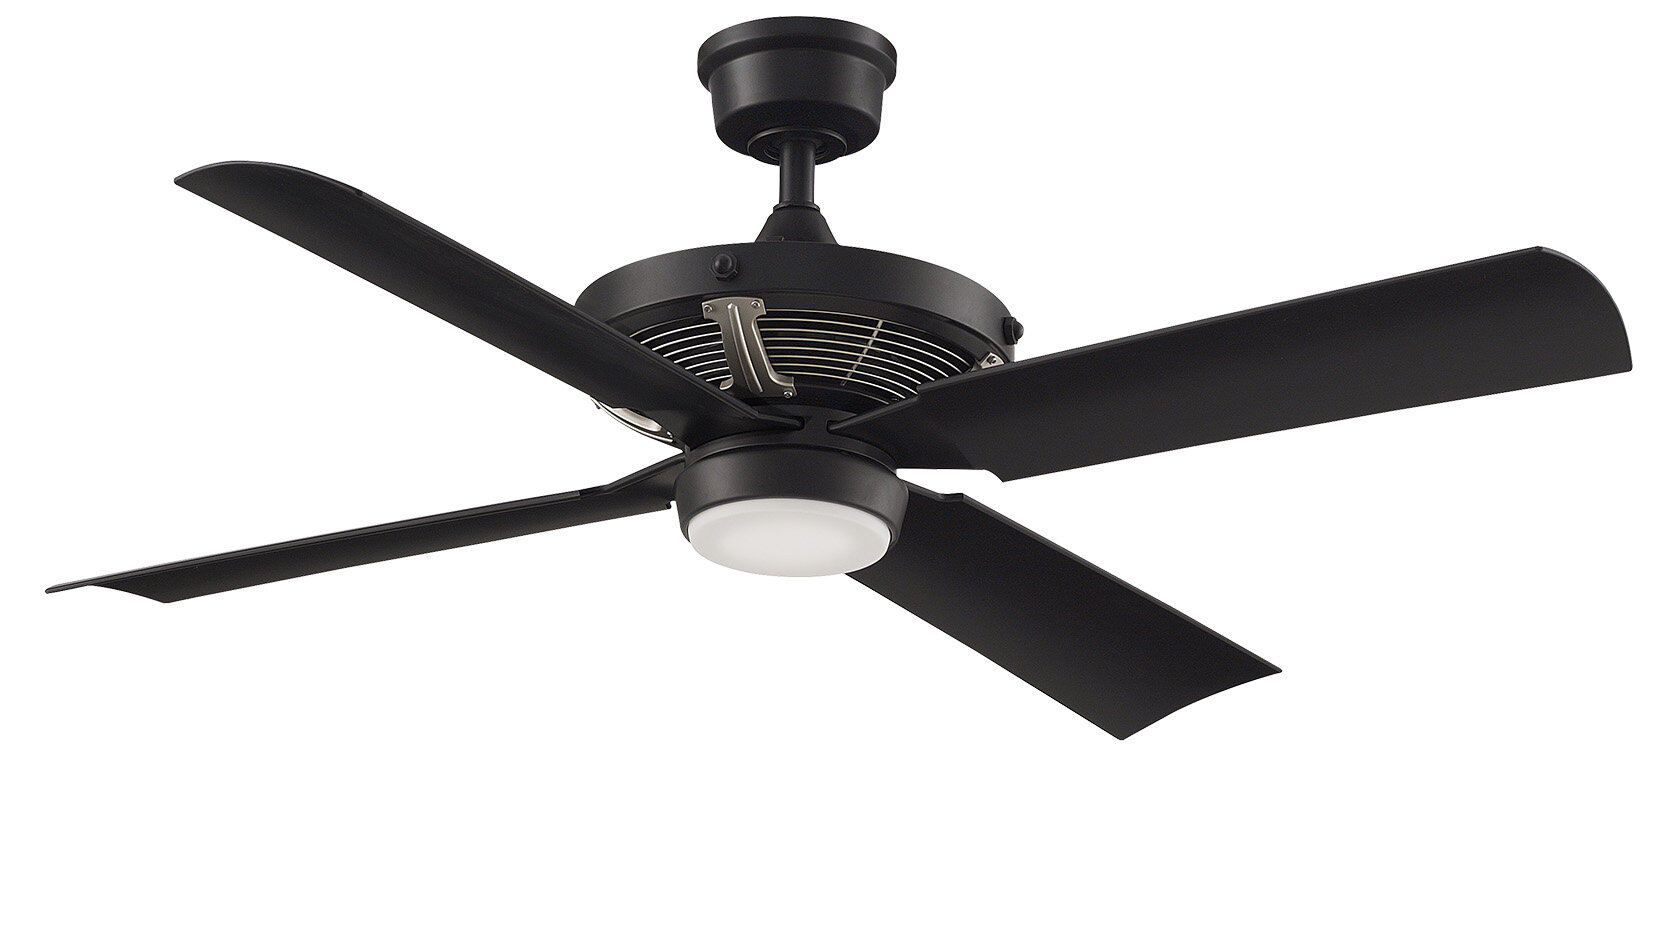 Fanimation 52 Pickett 4 Blade Outdoor Led Standard Ceiling Fan With Wall Control And Light Kit Included Reviews Wayfair